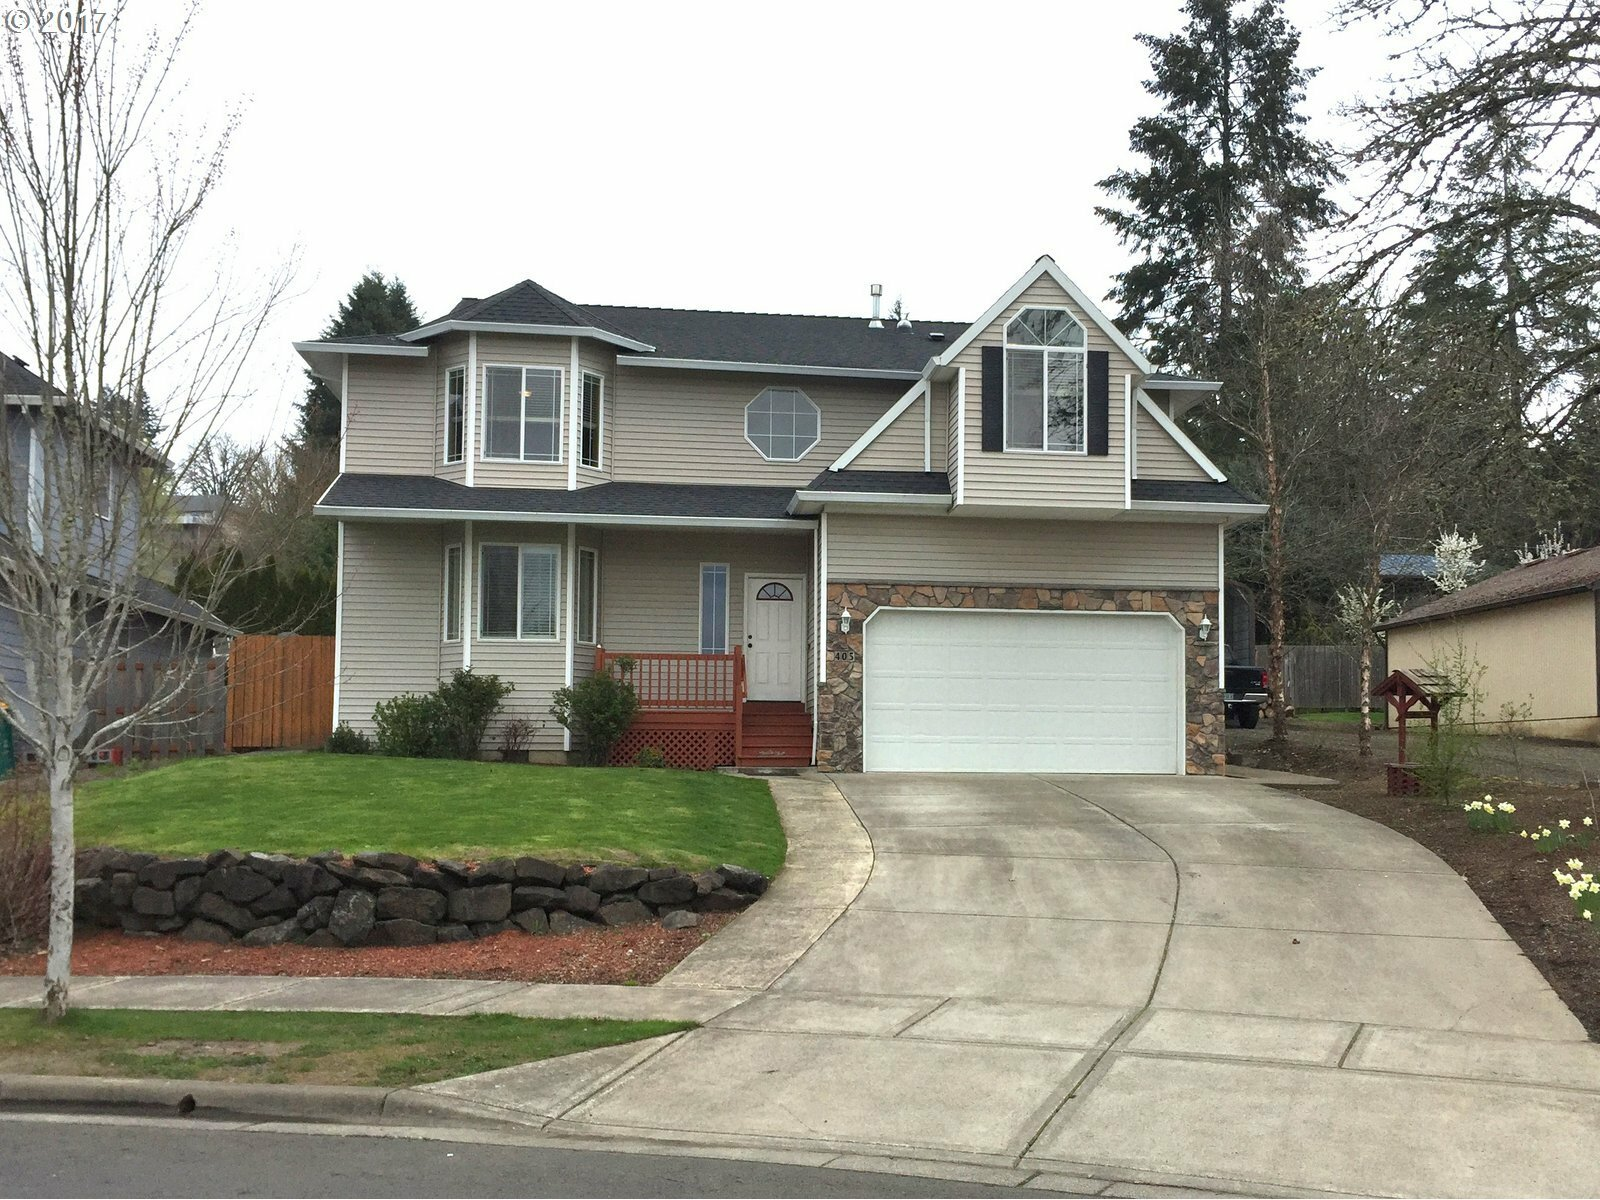 405 Blue Jay Ave, Forest Grove, OR - USA (photo 1)